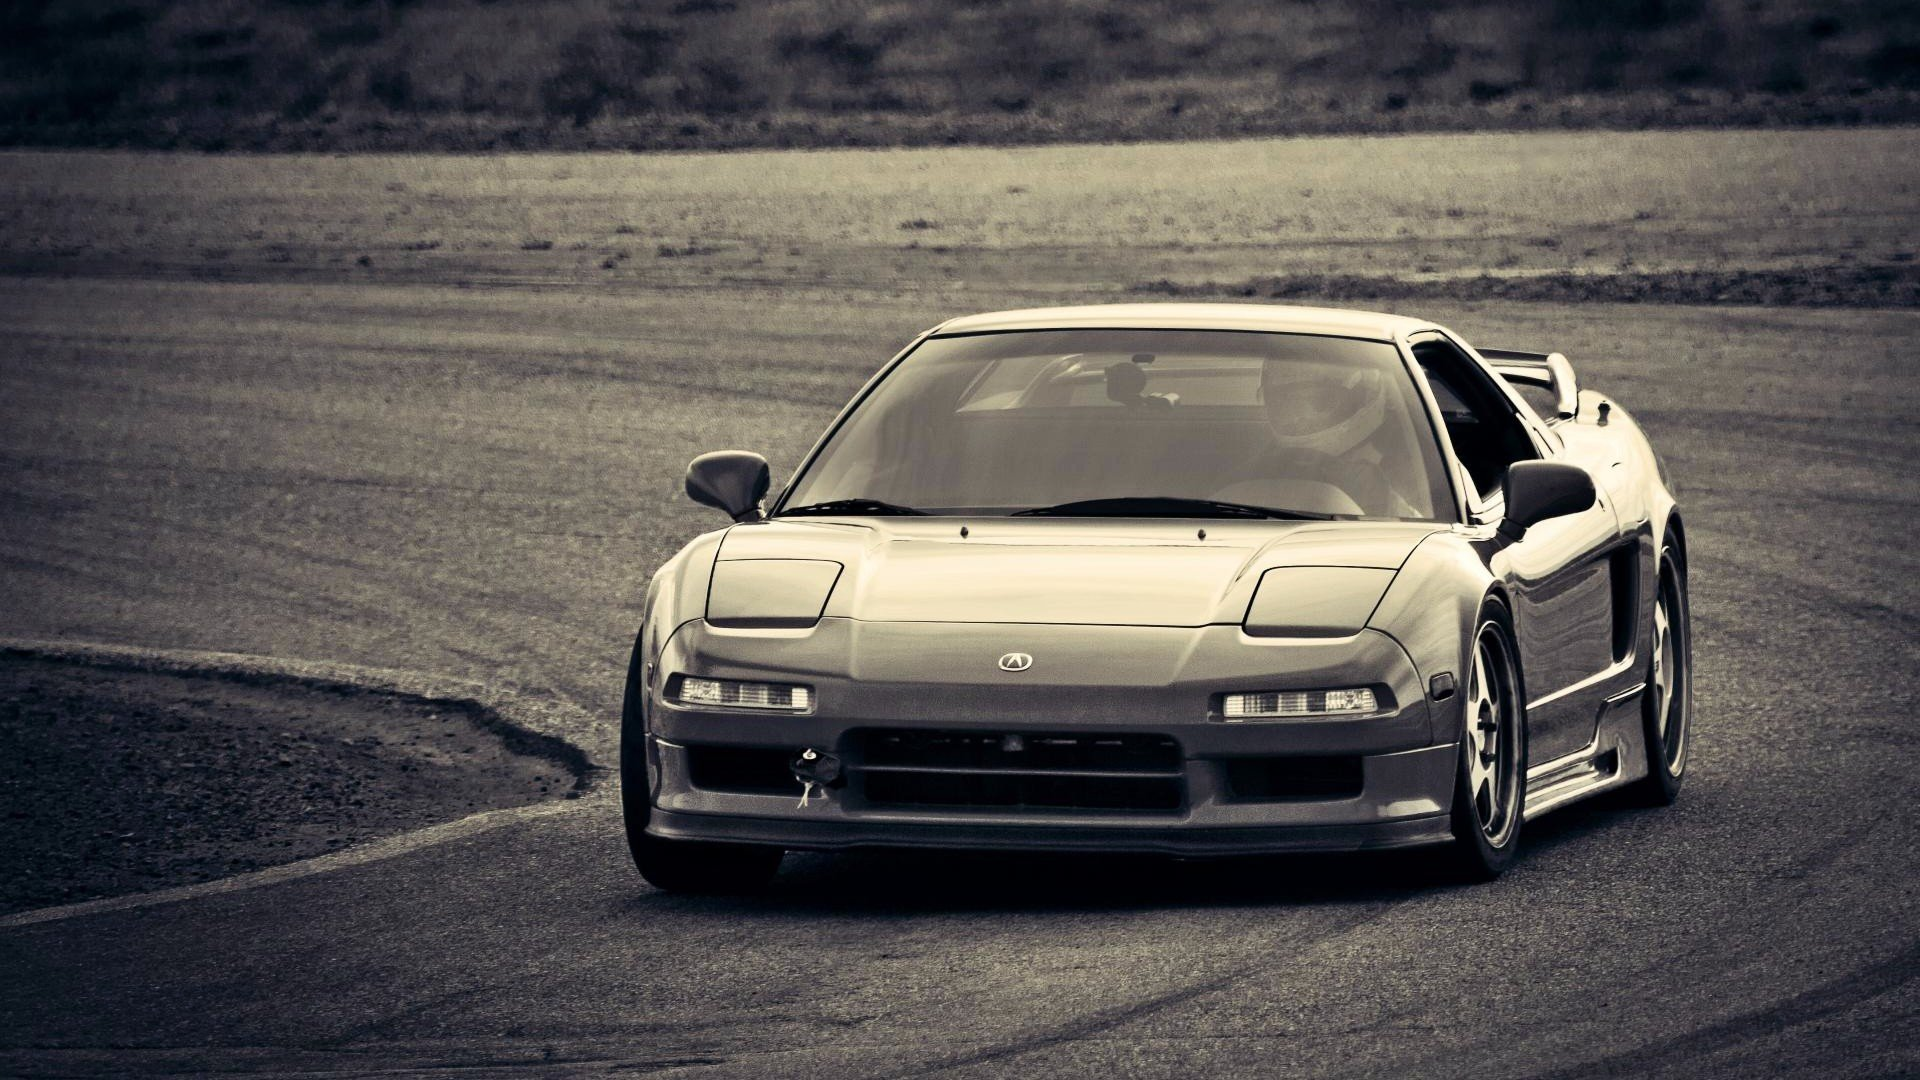 Cars acura acura nsx jdm japanese domestic market racing cars cars acura acura nsx jdm japanese domestic market racing cars wallpaper 1920x1080 267351 wallpaperup voltagebd Gallery